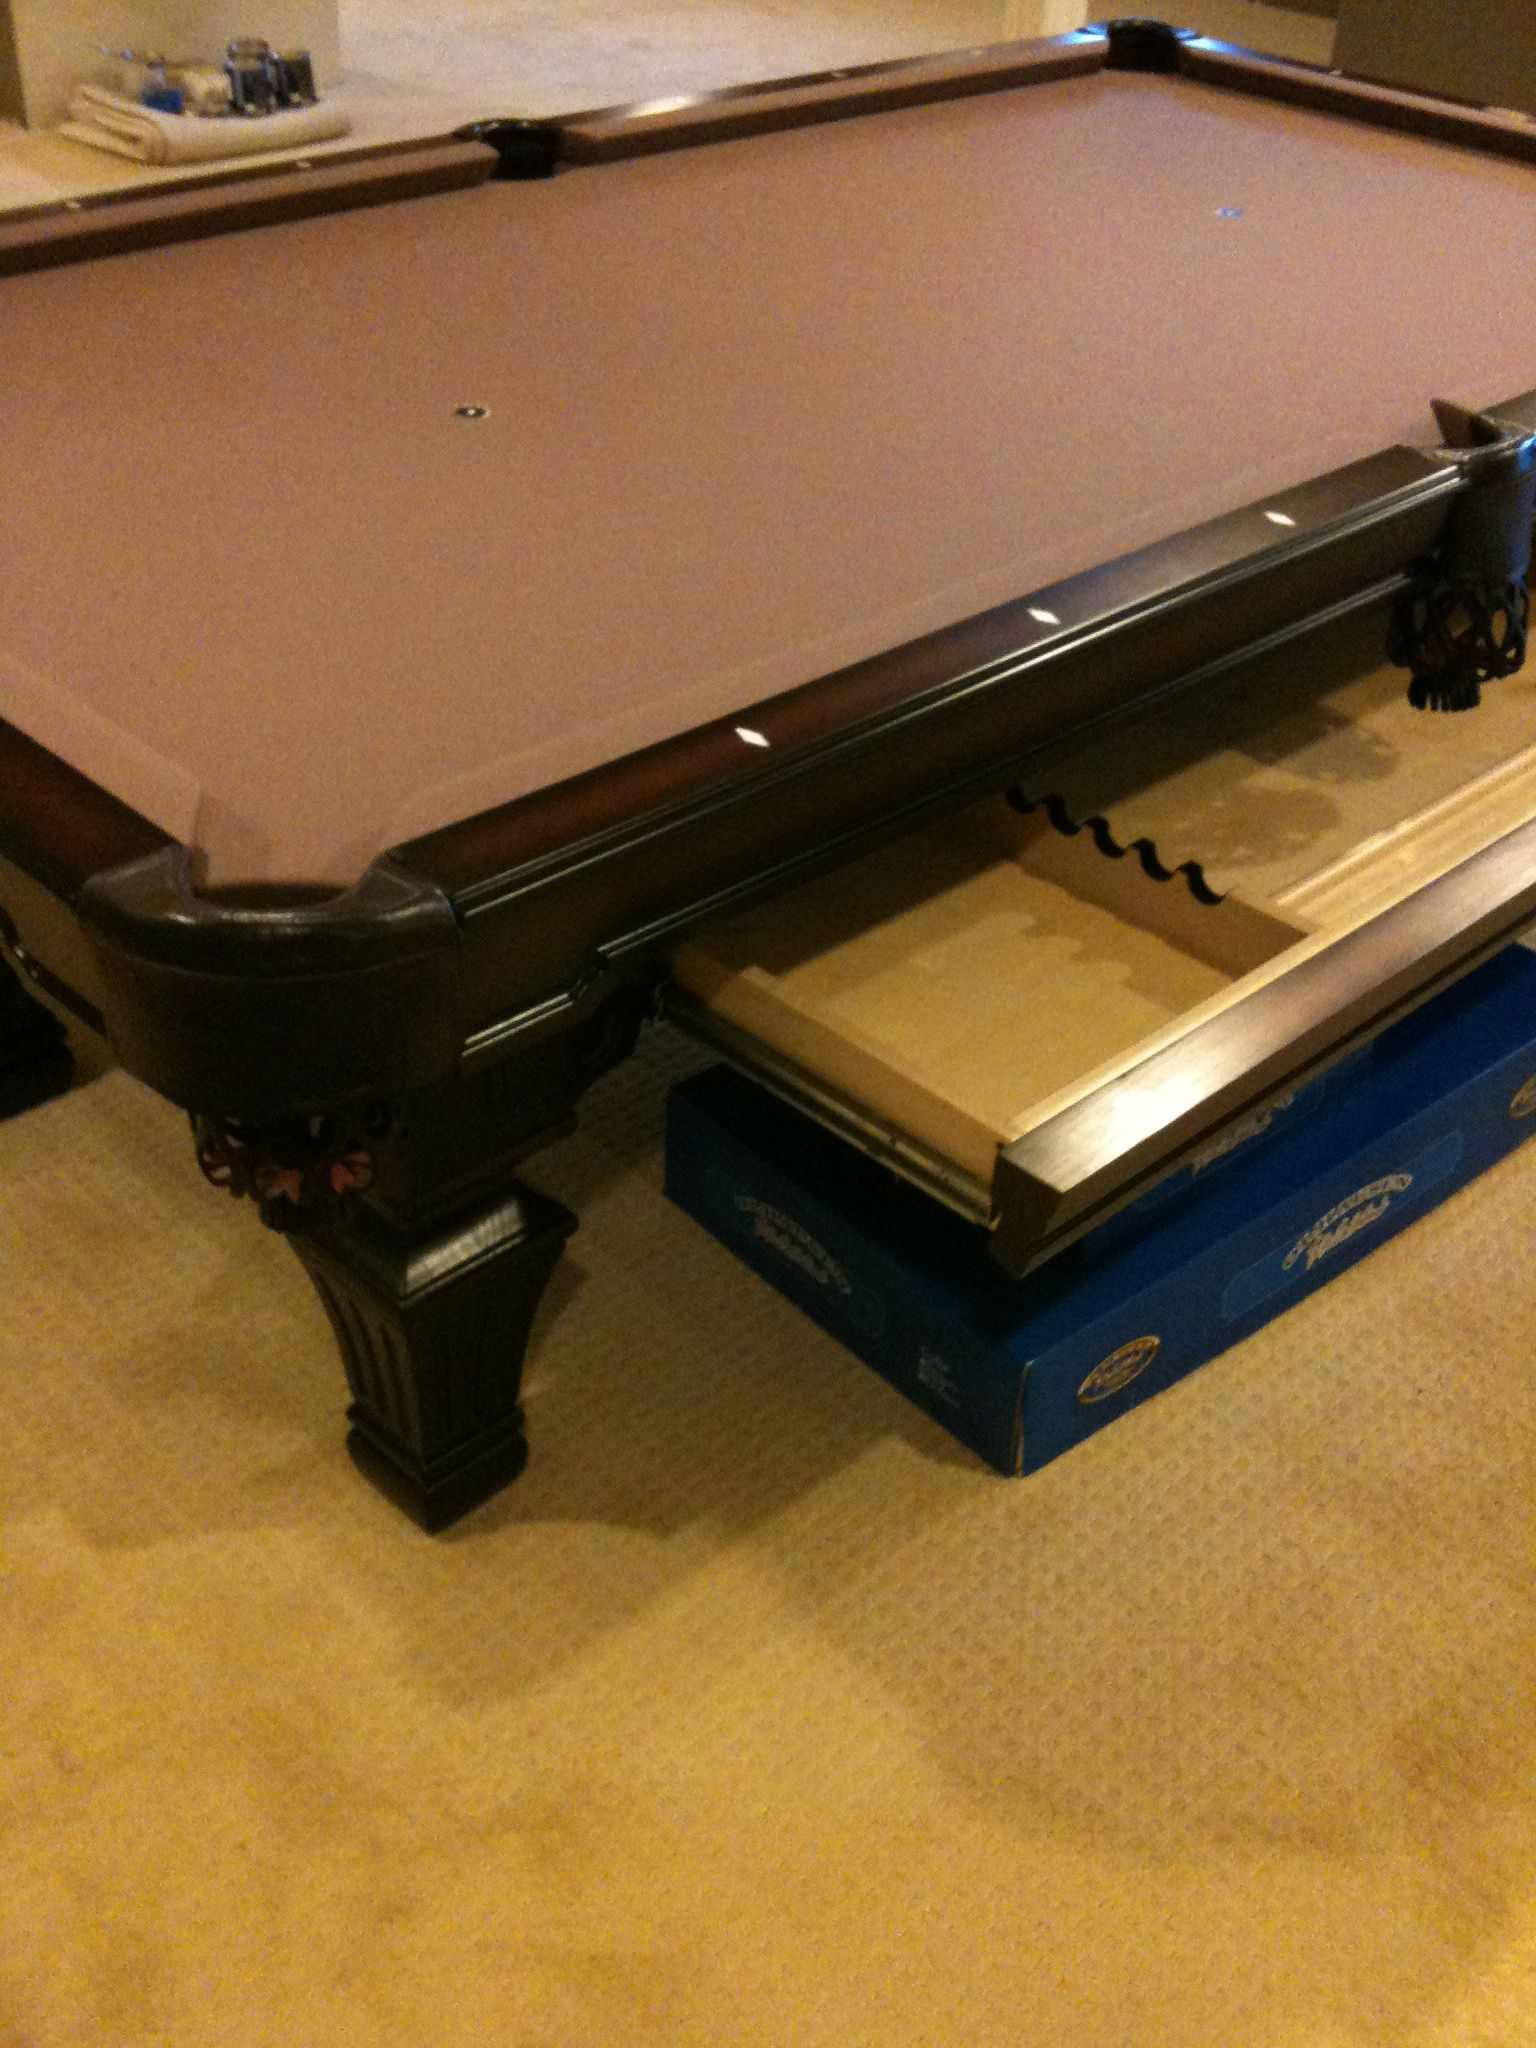 Another Olhausen Hampton Pool Table With A Cue Storage Drawer - Olhausen hampton pool table